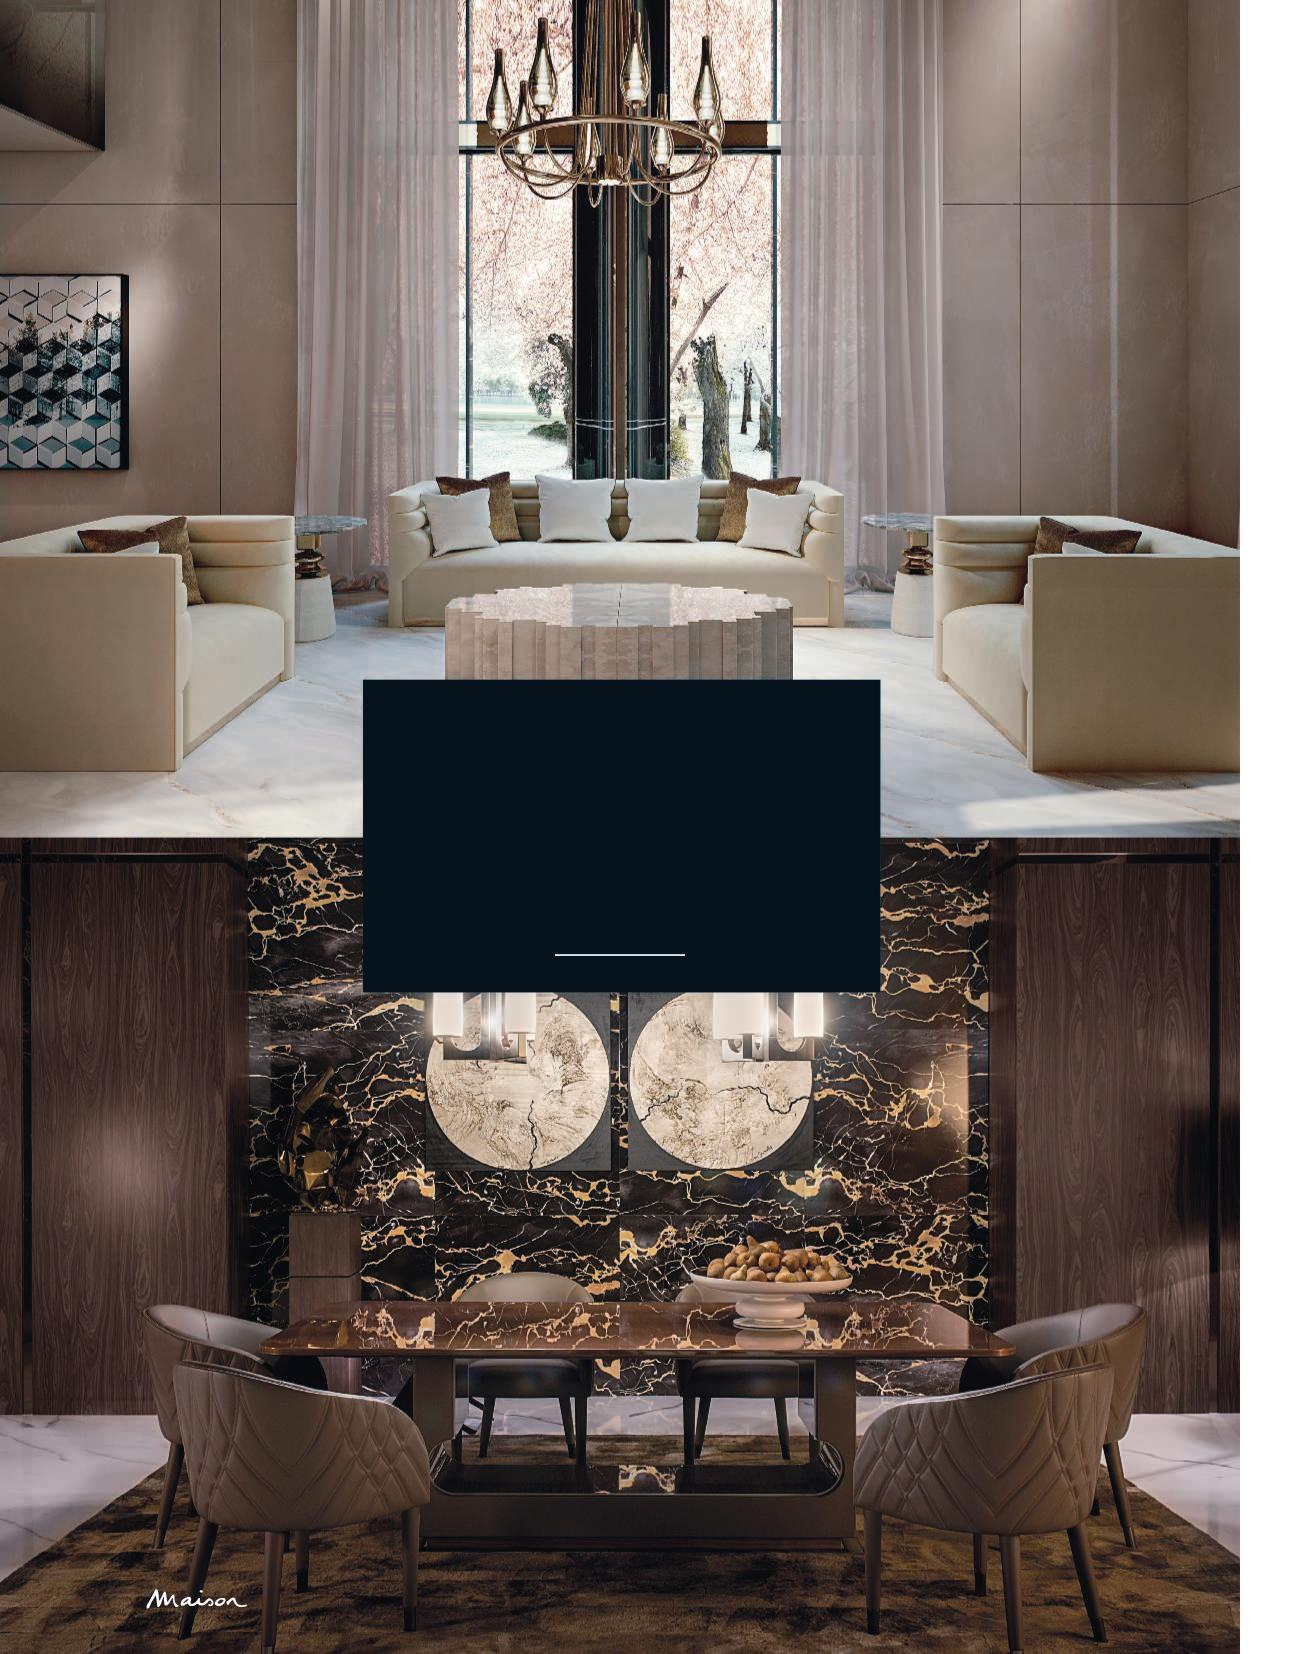 italy marie claire maison blog smania. Black Bedroom Furniture Sets. Home Design Ideas